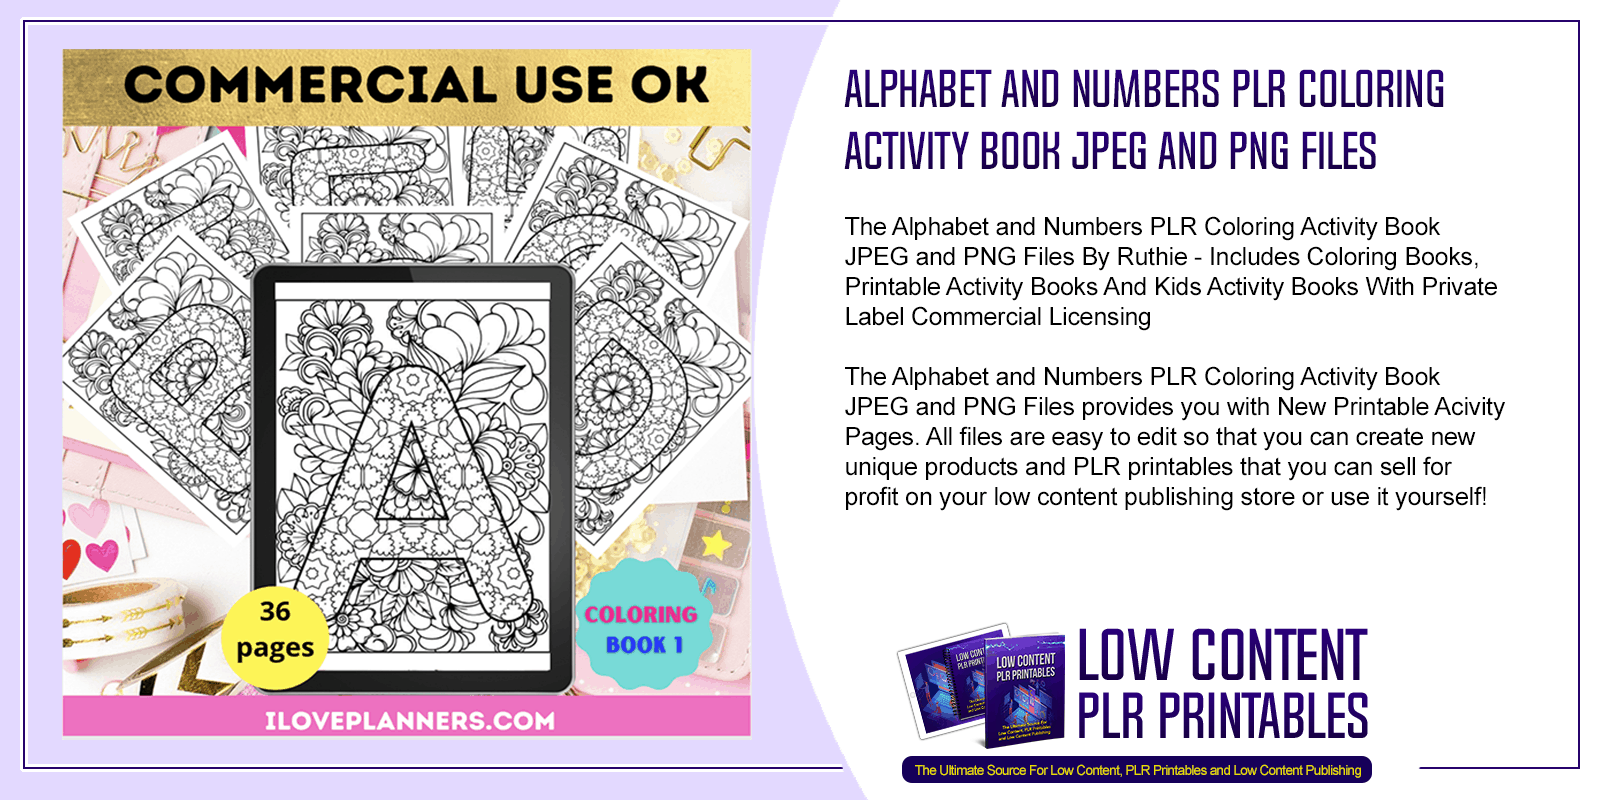 Alphabet and Numbers PLR Coloring Activity Book JPEG and PNG Files